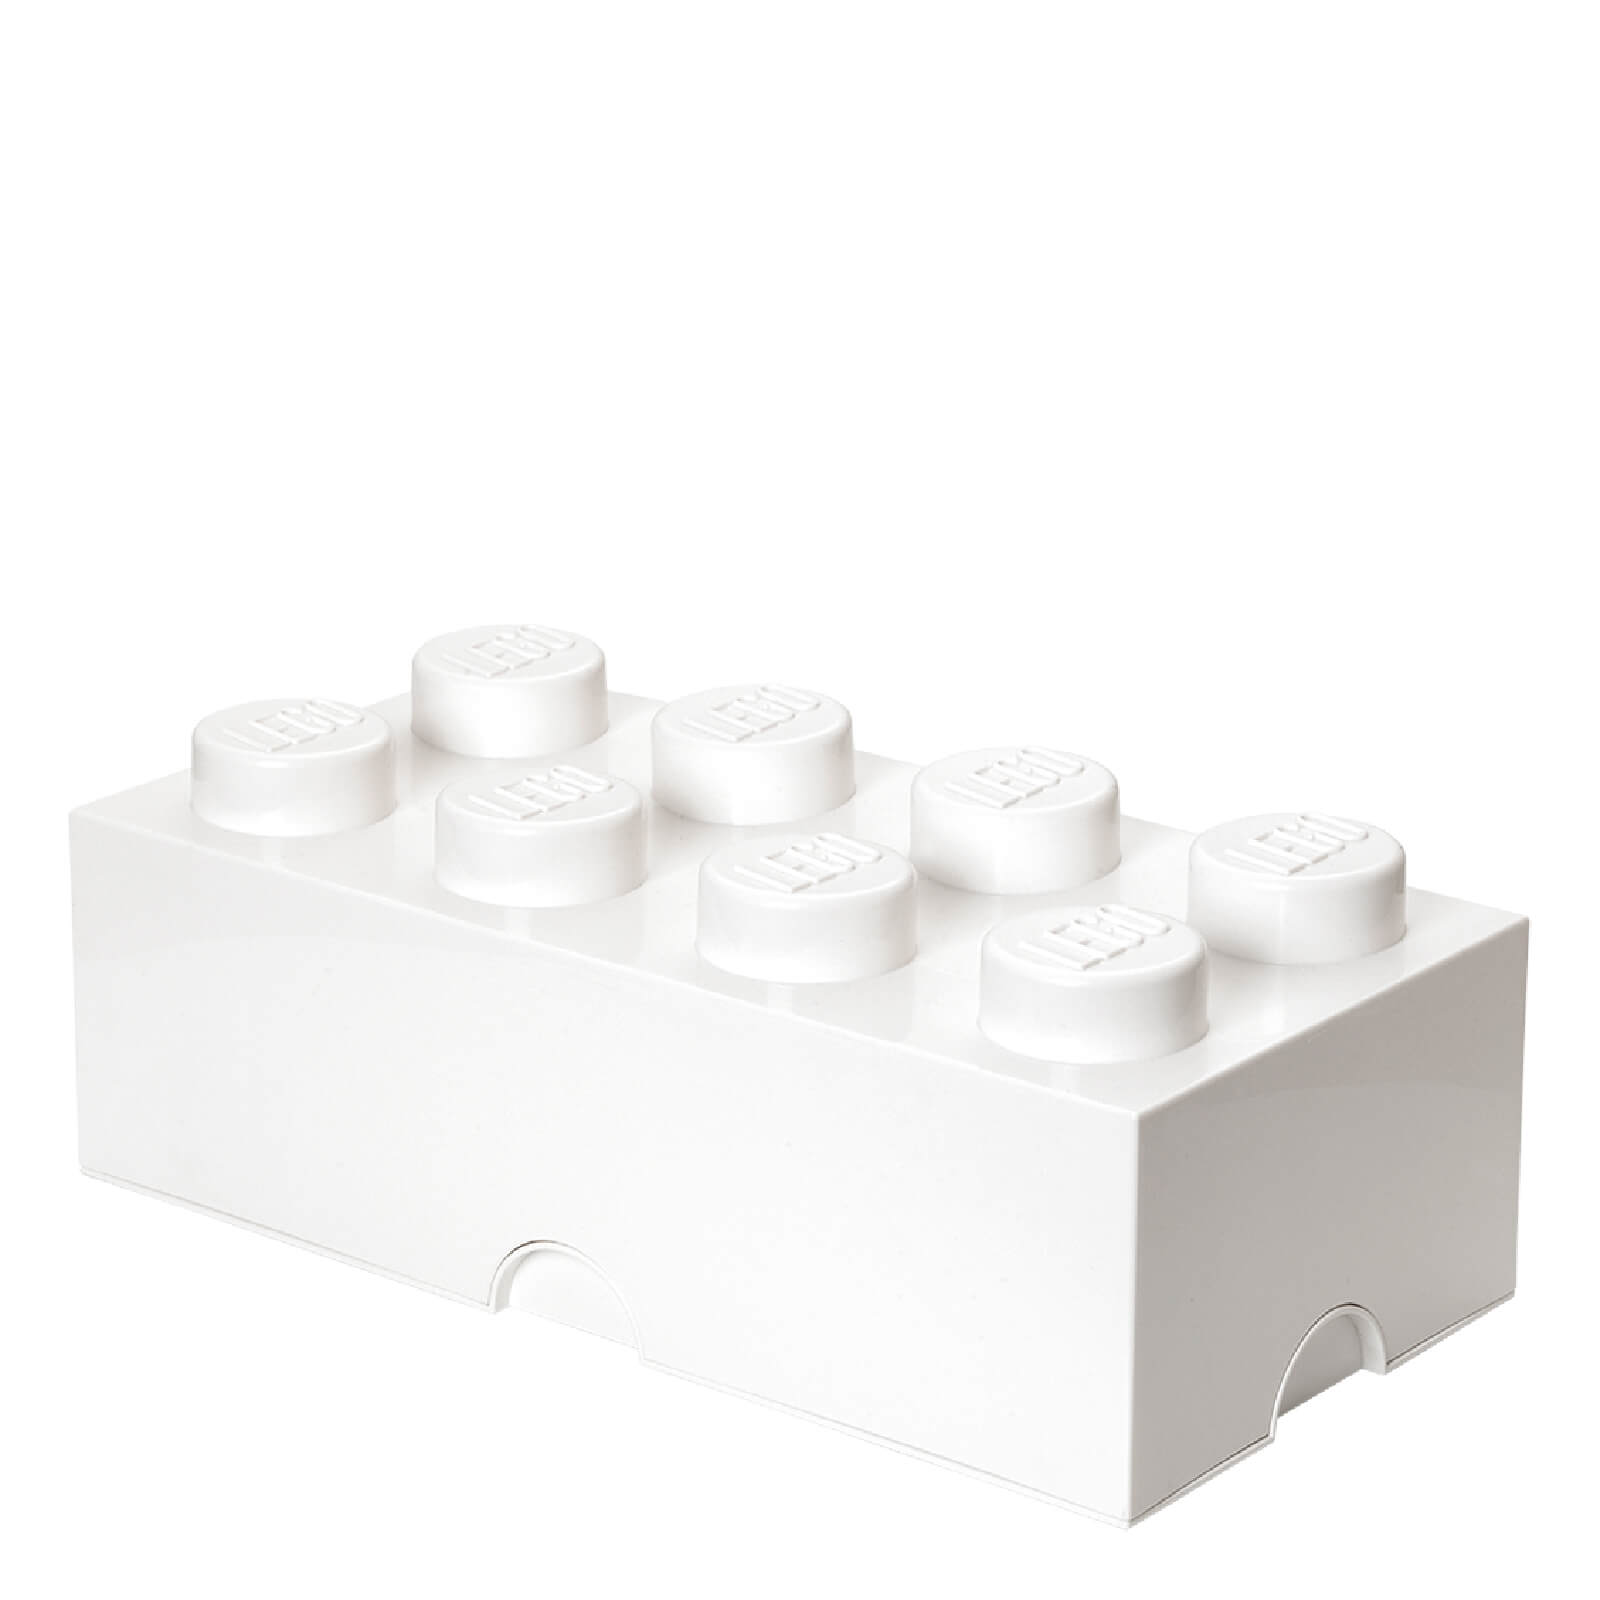 LEGO Storage Brick 8 - White